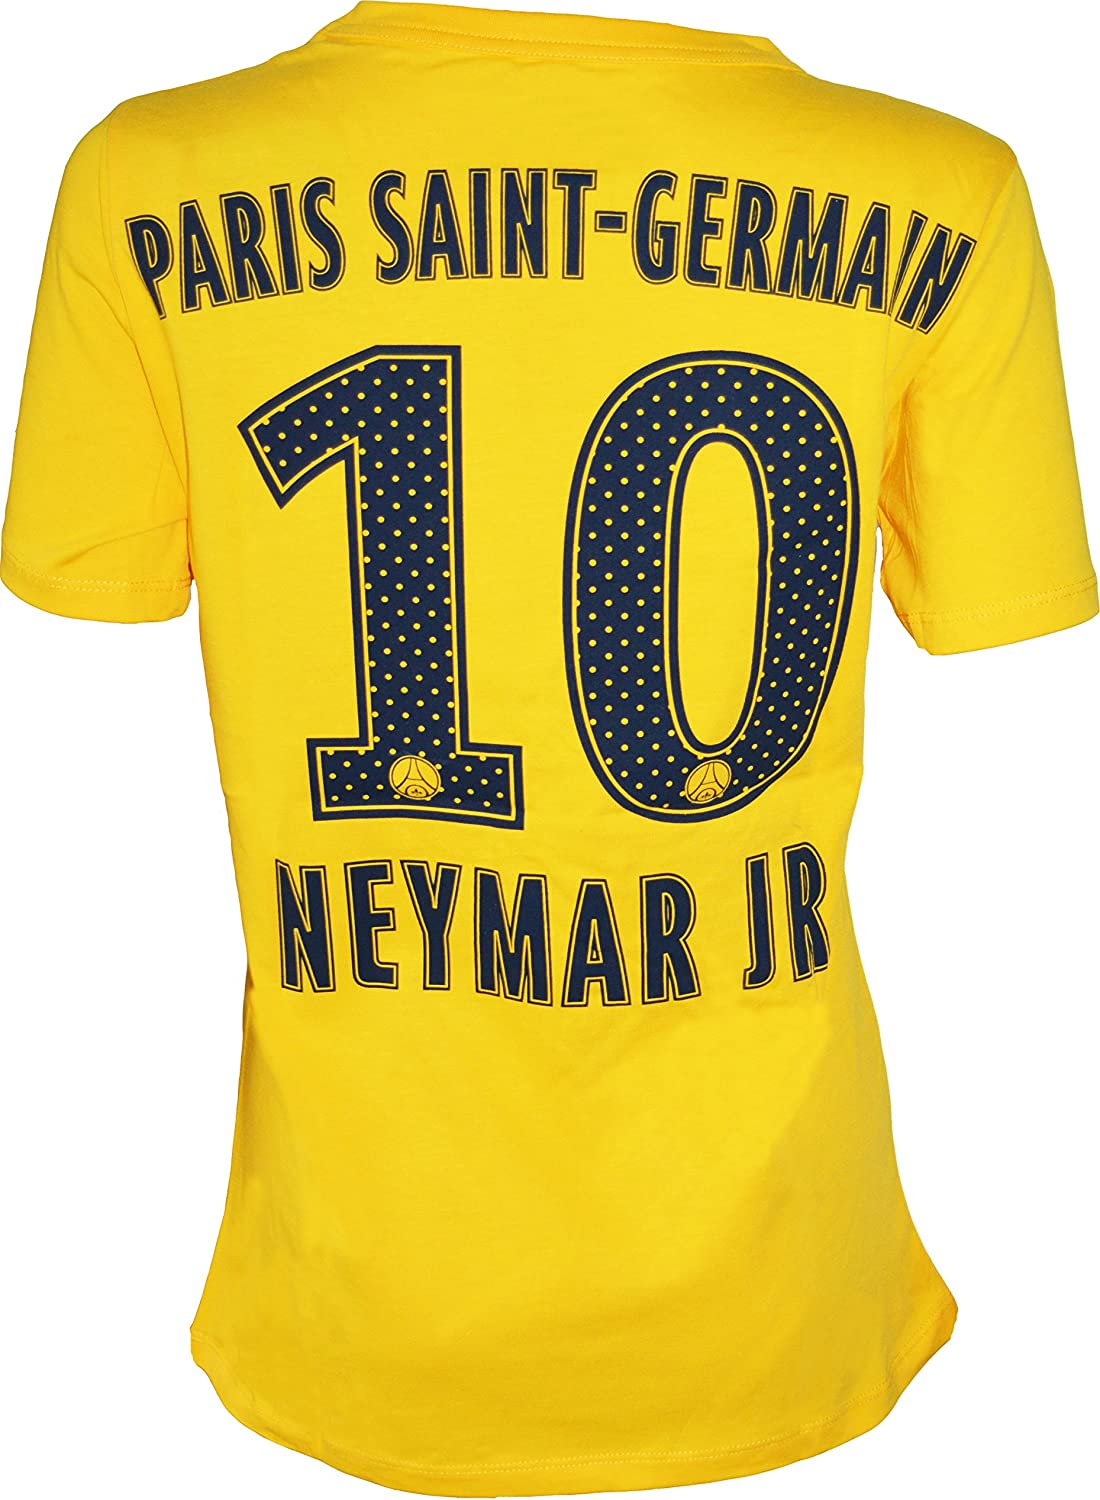 Neymar Jr PARIS SAINT GERMAIN T-Shirt PSG Collection Officielle Taille Homme